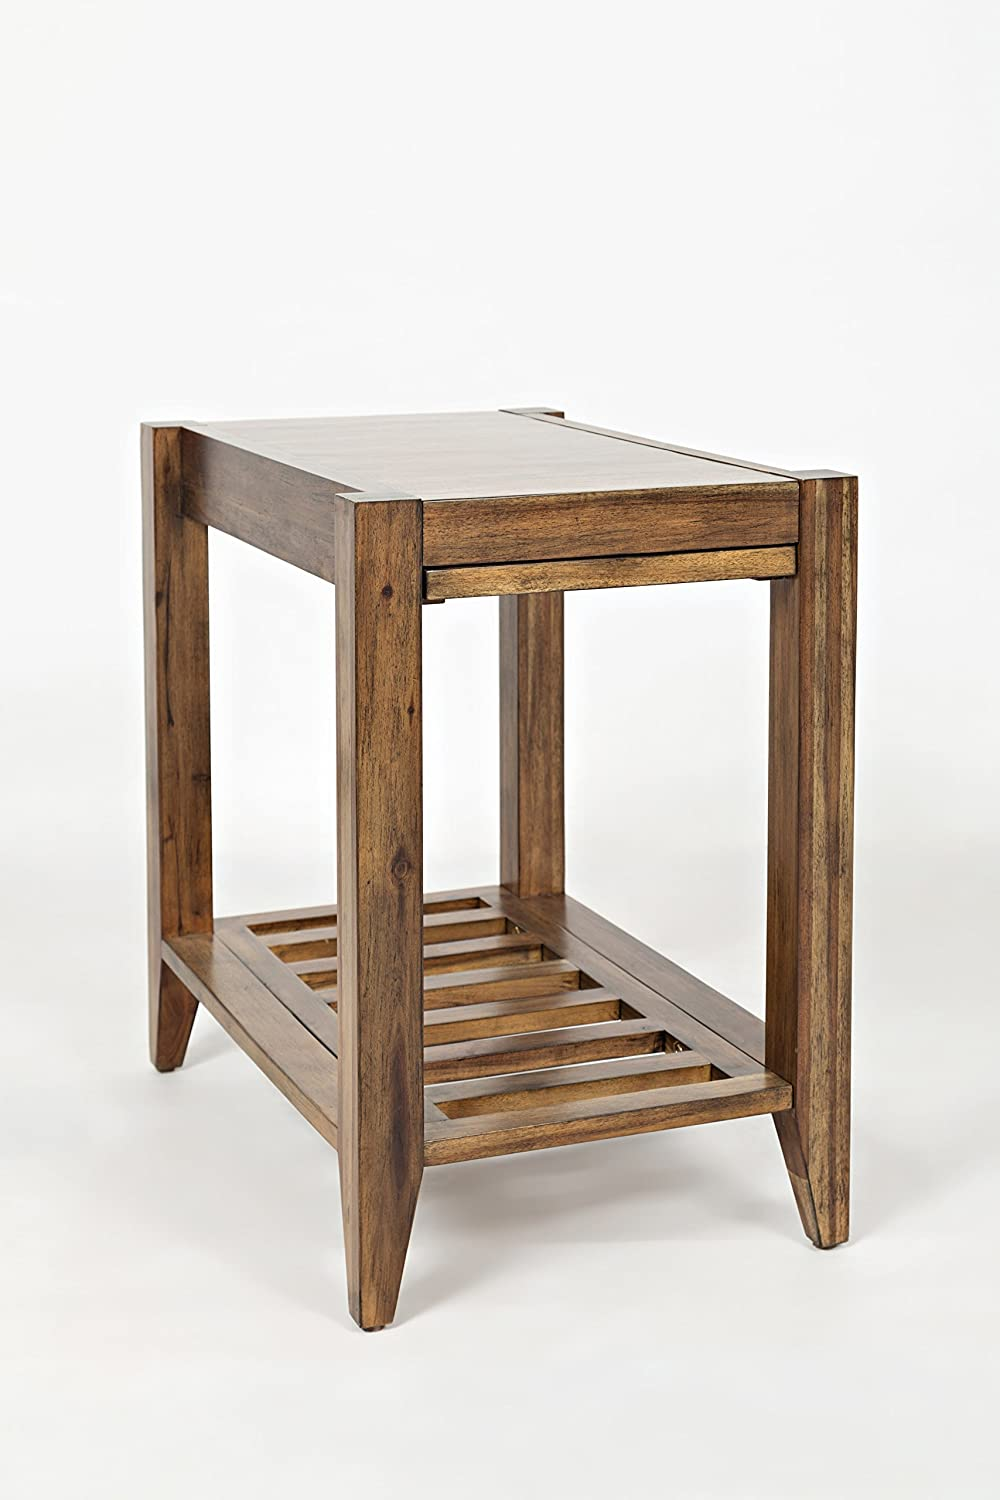 Benzara BM183827 Wooden Side Table with Slated Bottom Shelf Brown